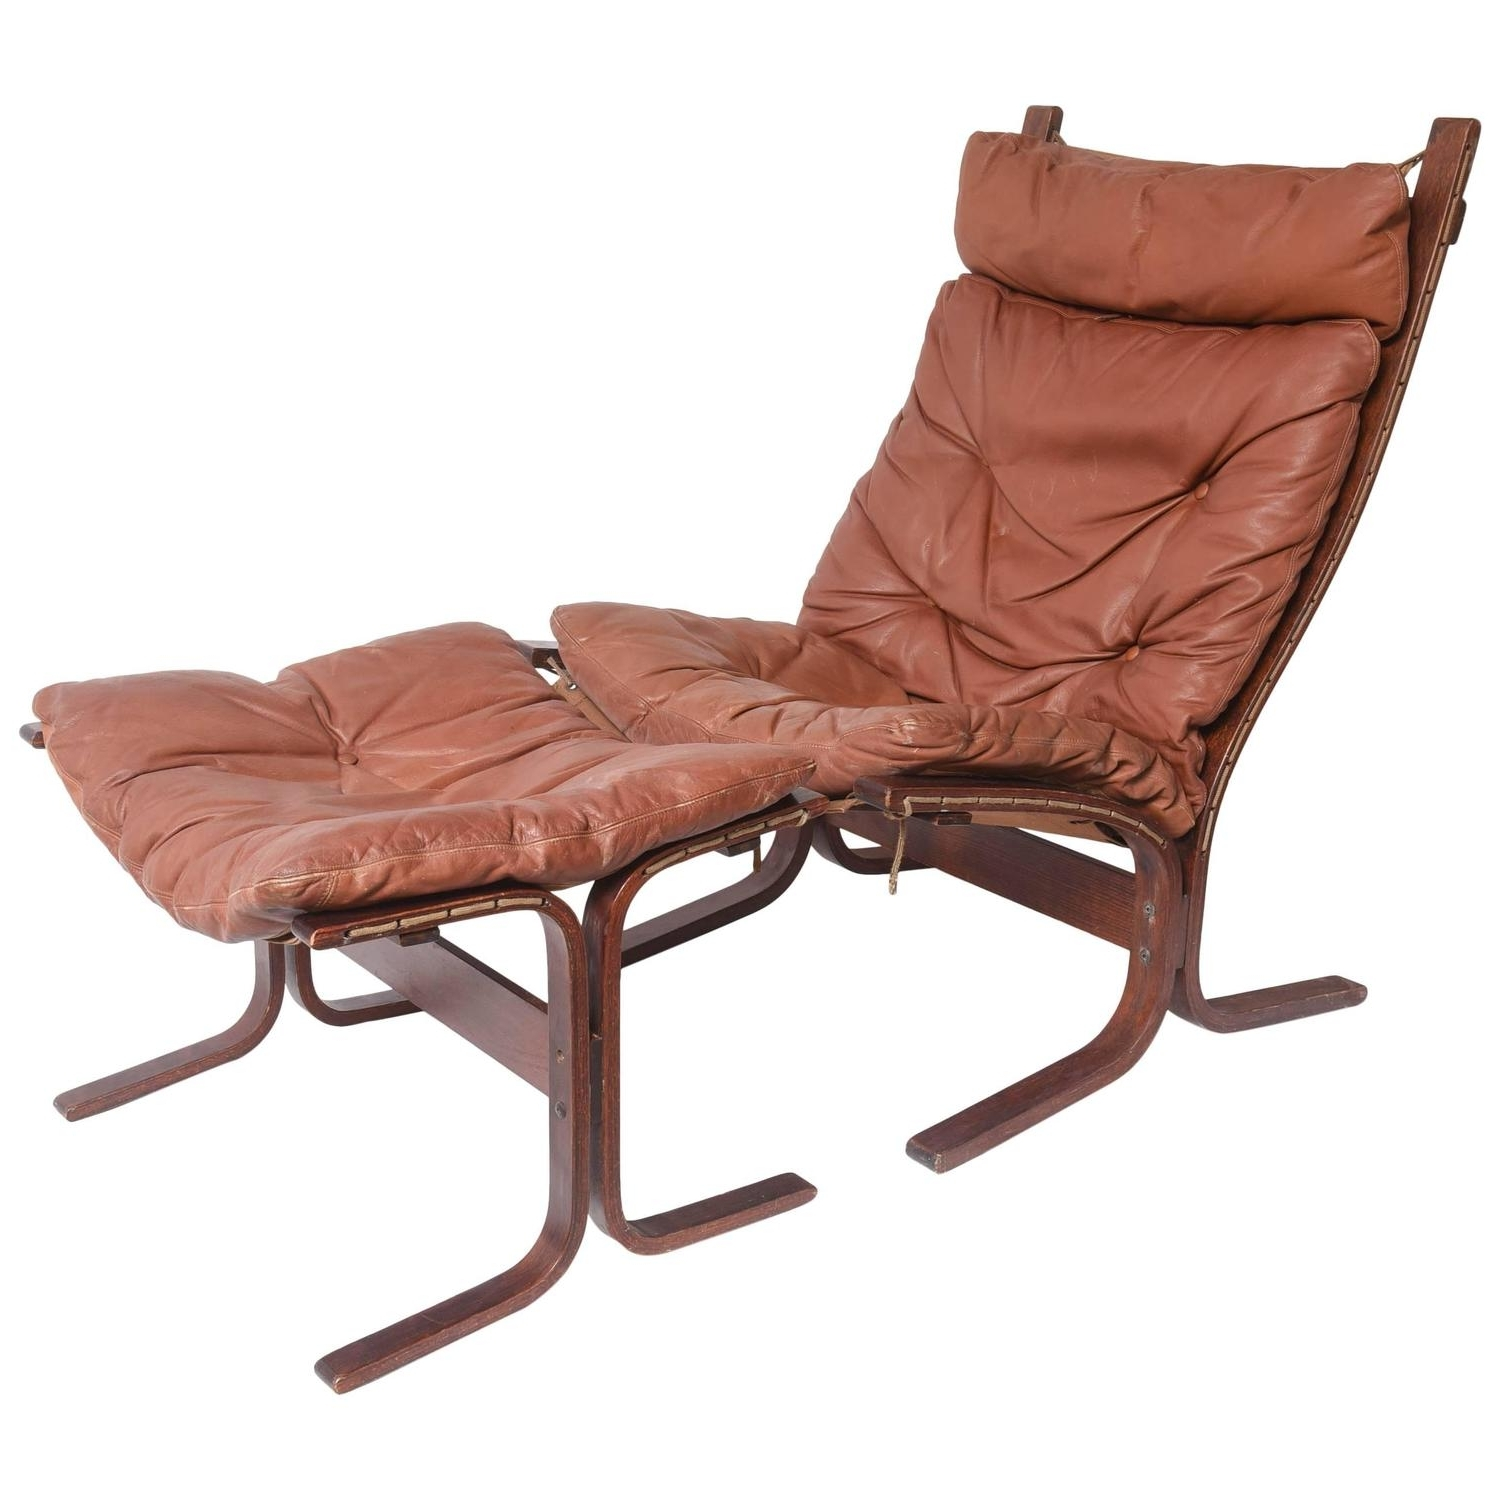 Most Current Chaise Lounge Chairs With Ottoman For Lounge Chair : Chaise Lounge Chair Scandinavian Chair And Ottoman (View 8 of 15)